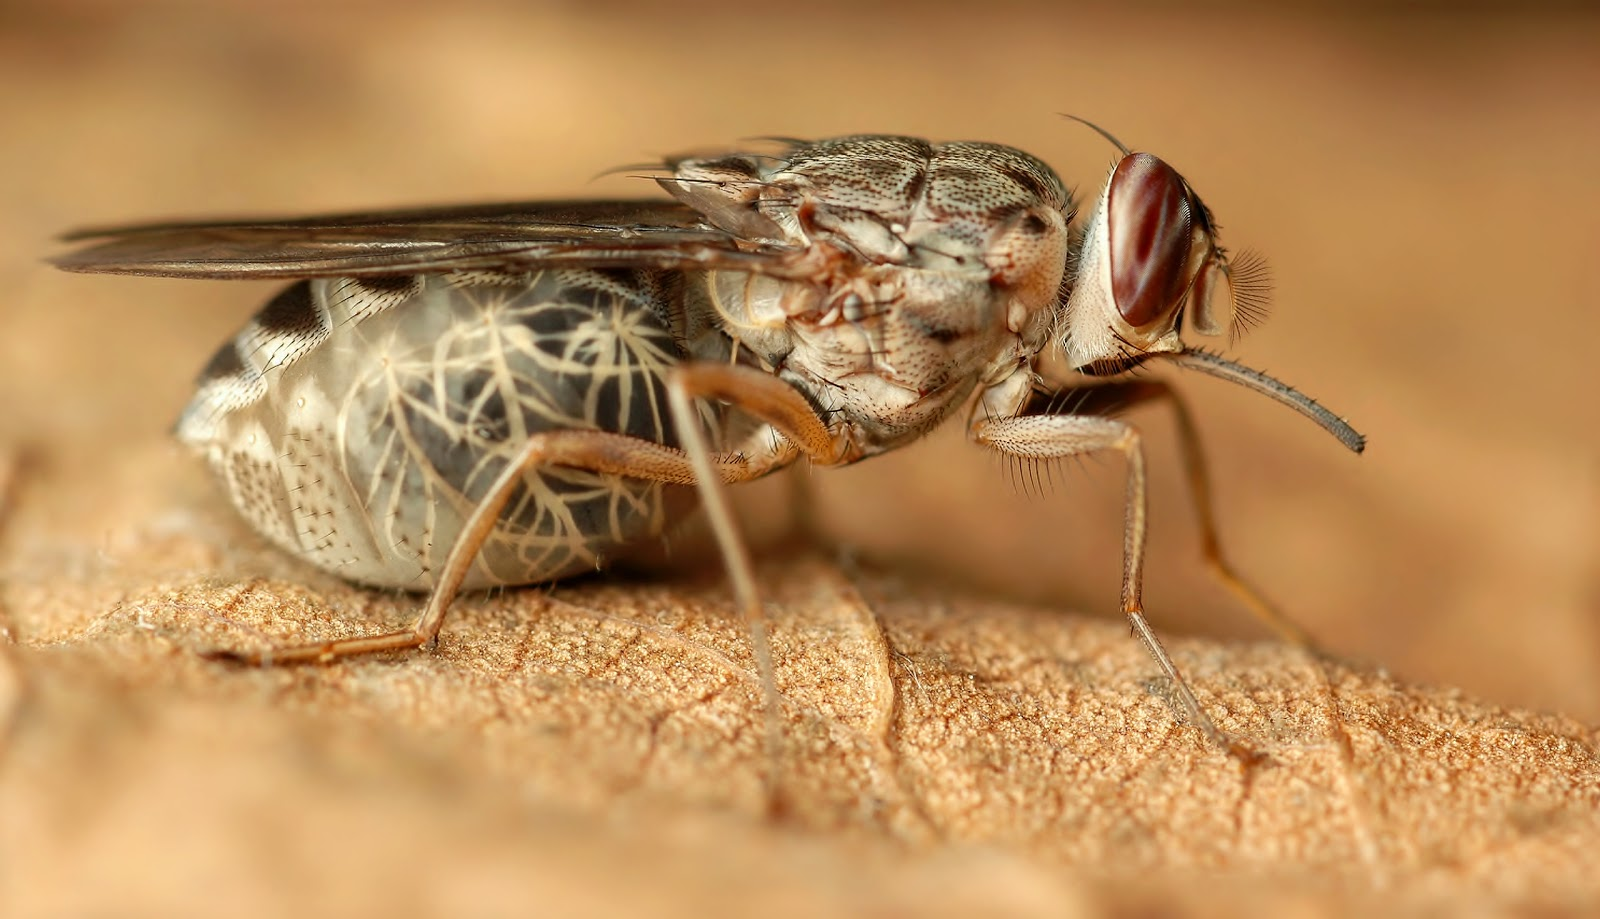 tsetse fly Tsetse flies can be seen as independent individuals in two forms: as third instar larvae, and as adults tsetse first become separate from their mothers during the third larval instar.